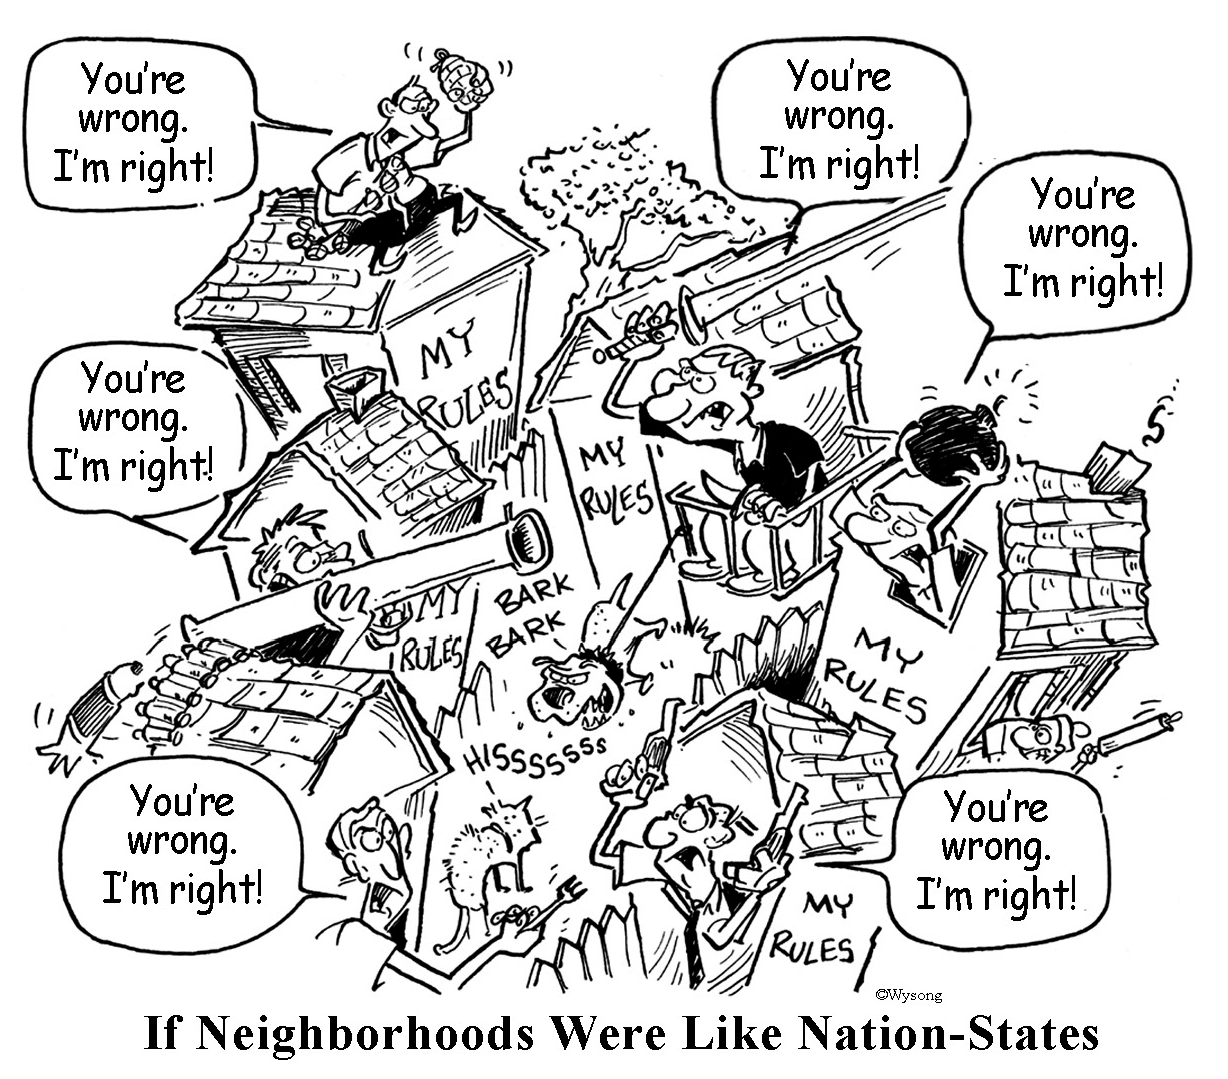 Neighborhoods Like Nation-States